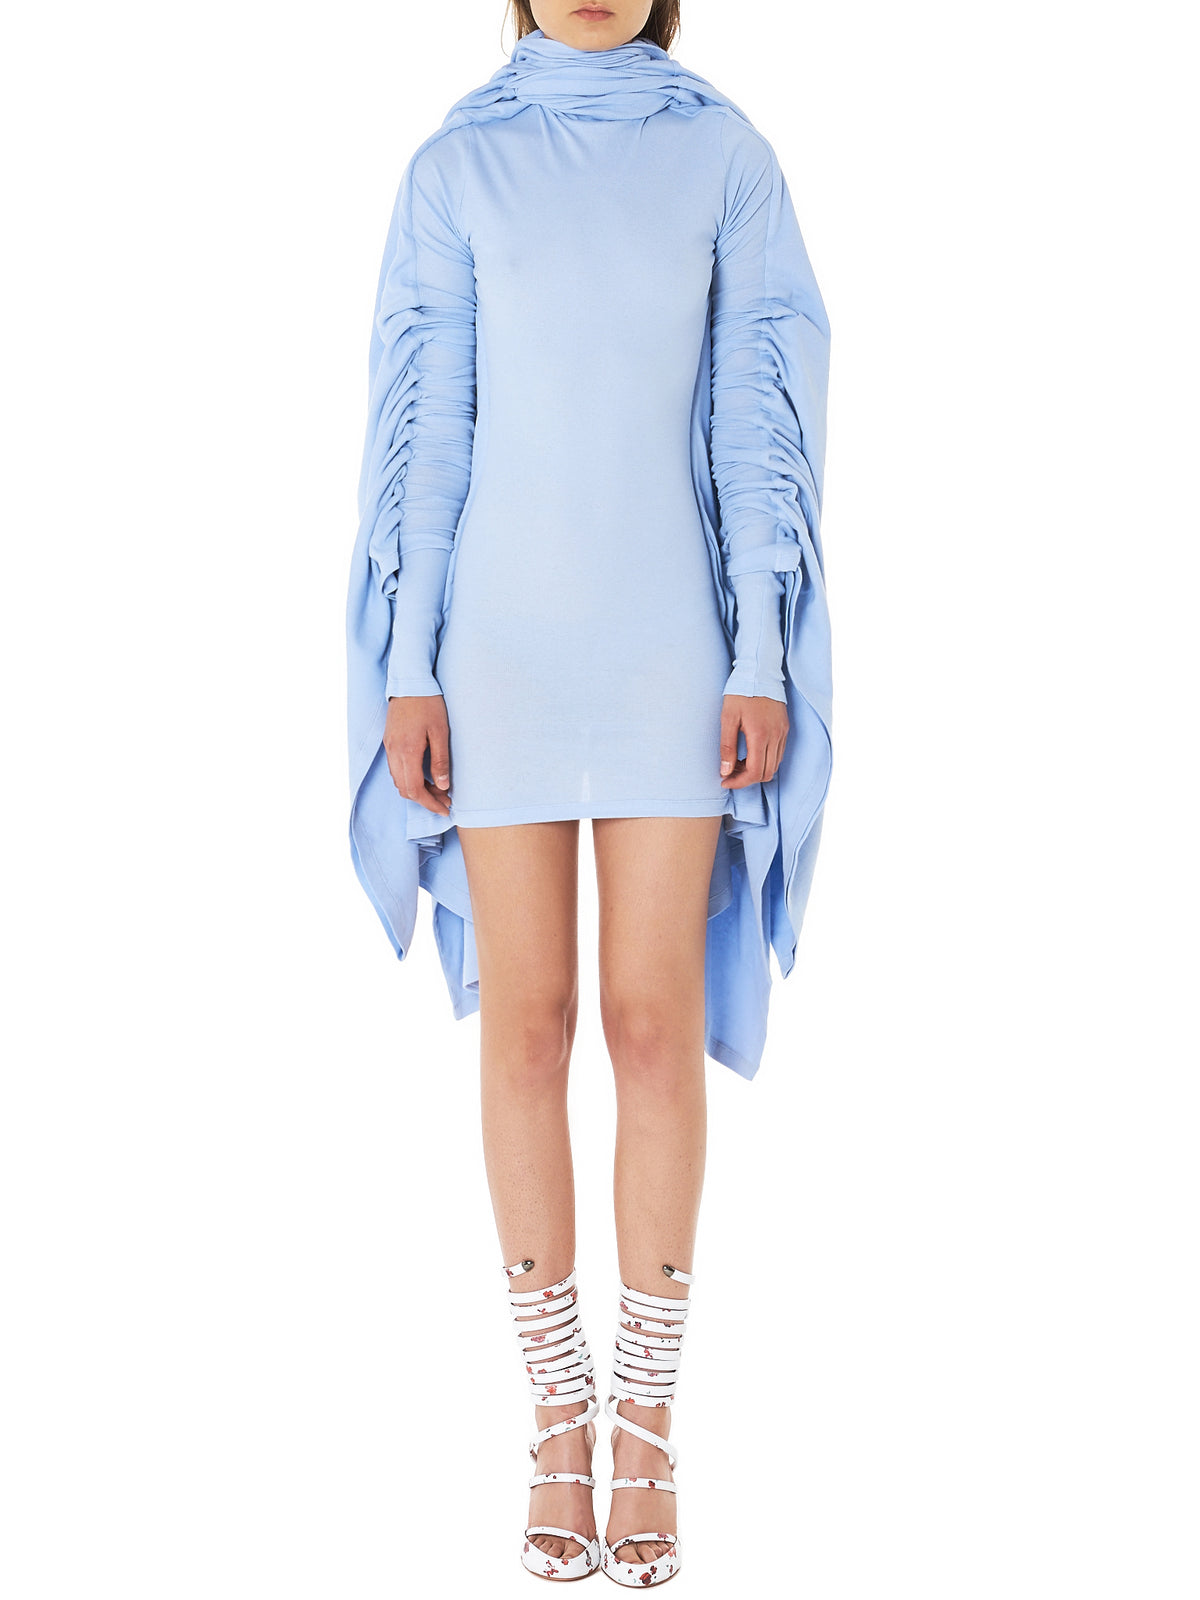 Caped Ruche Mini Dress (WTS8S-S14-F52-S14-ICE-BLUE)